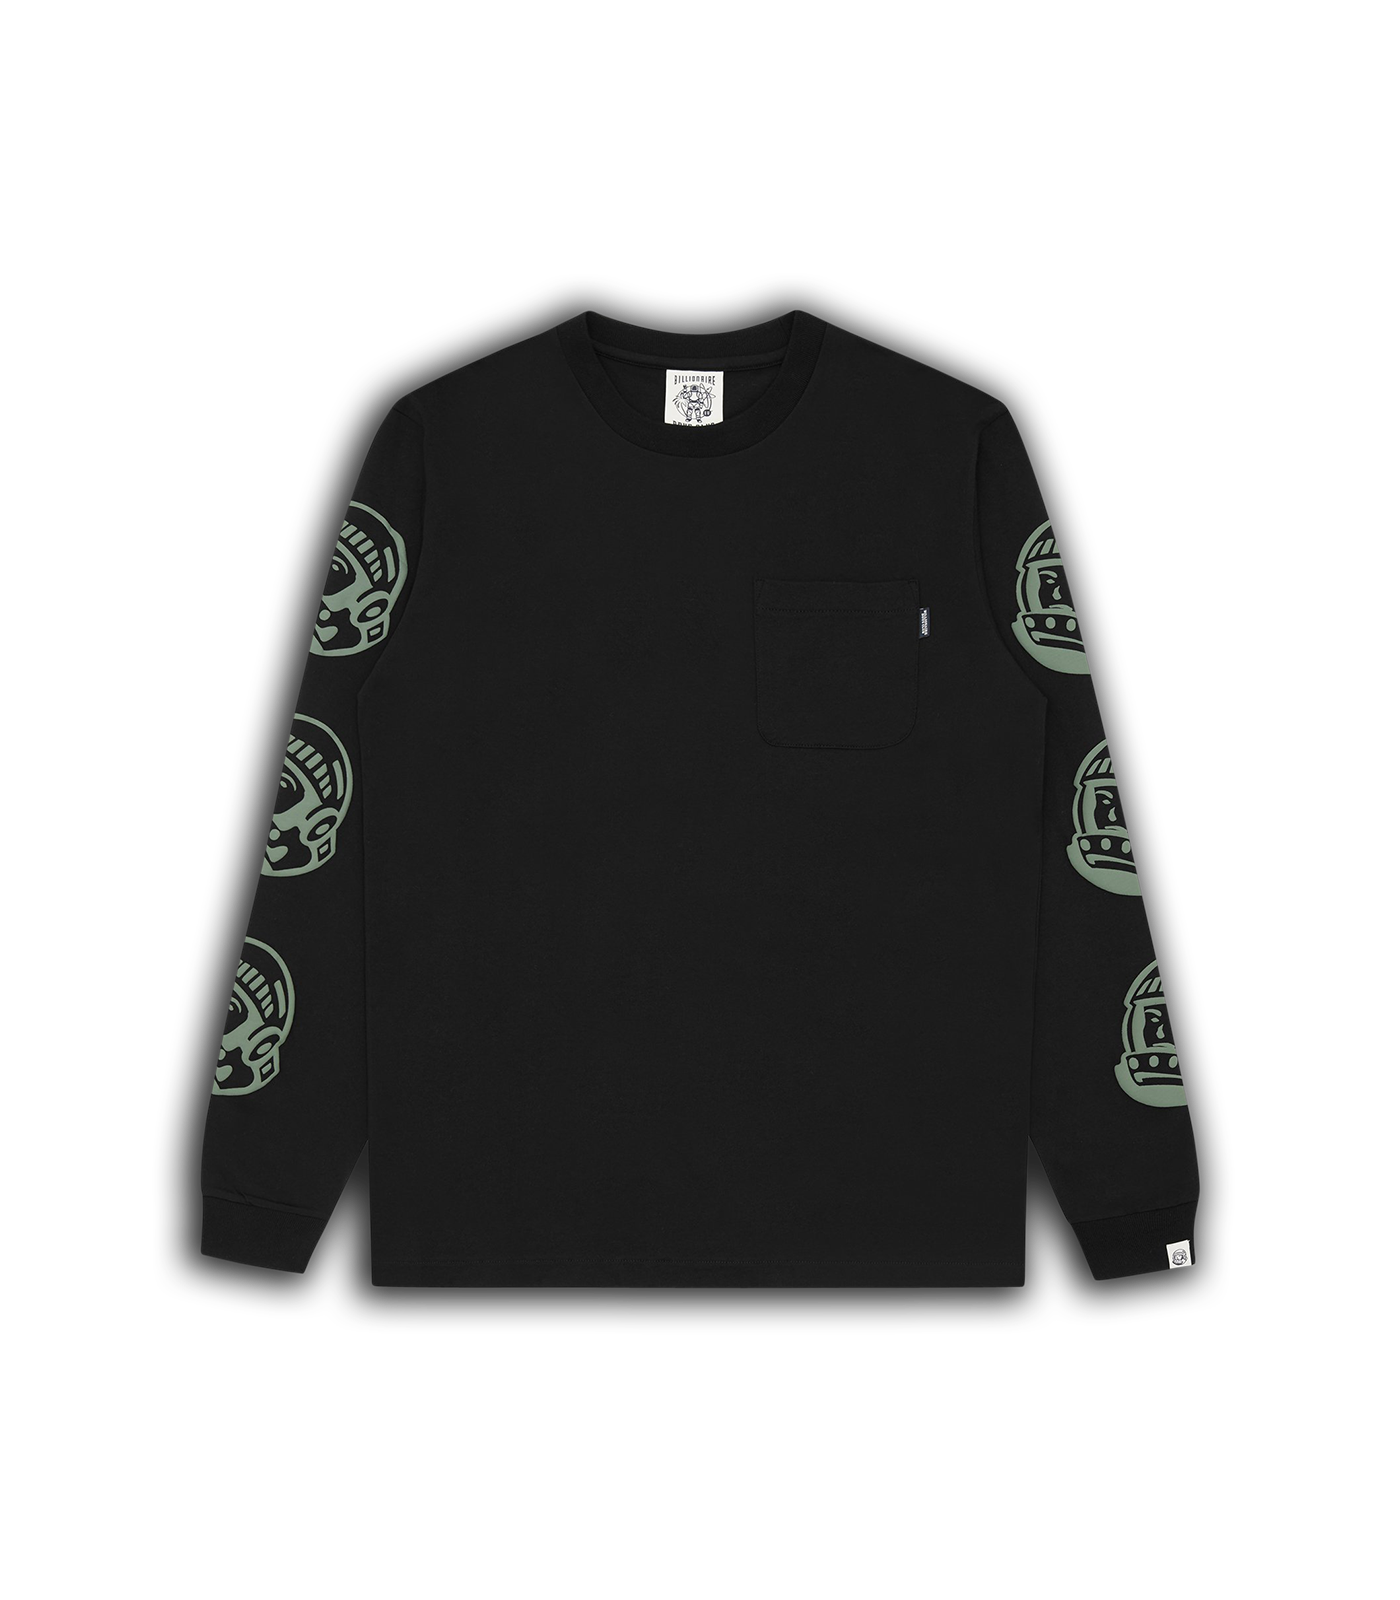 ASTRO REPEAT L/S T-SHIRT - BLACK